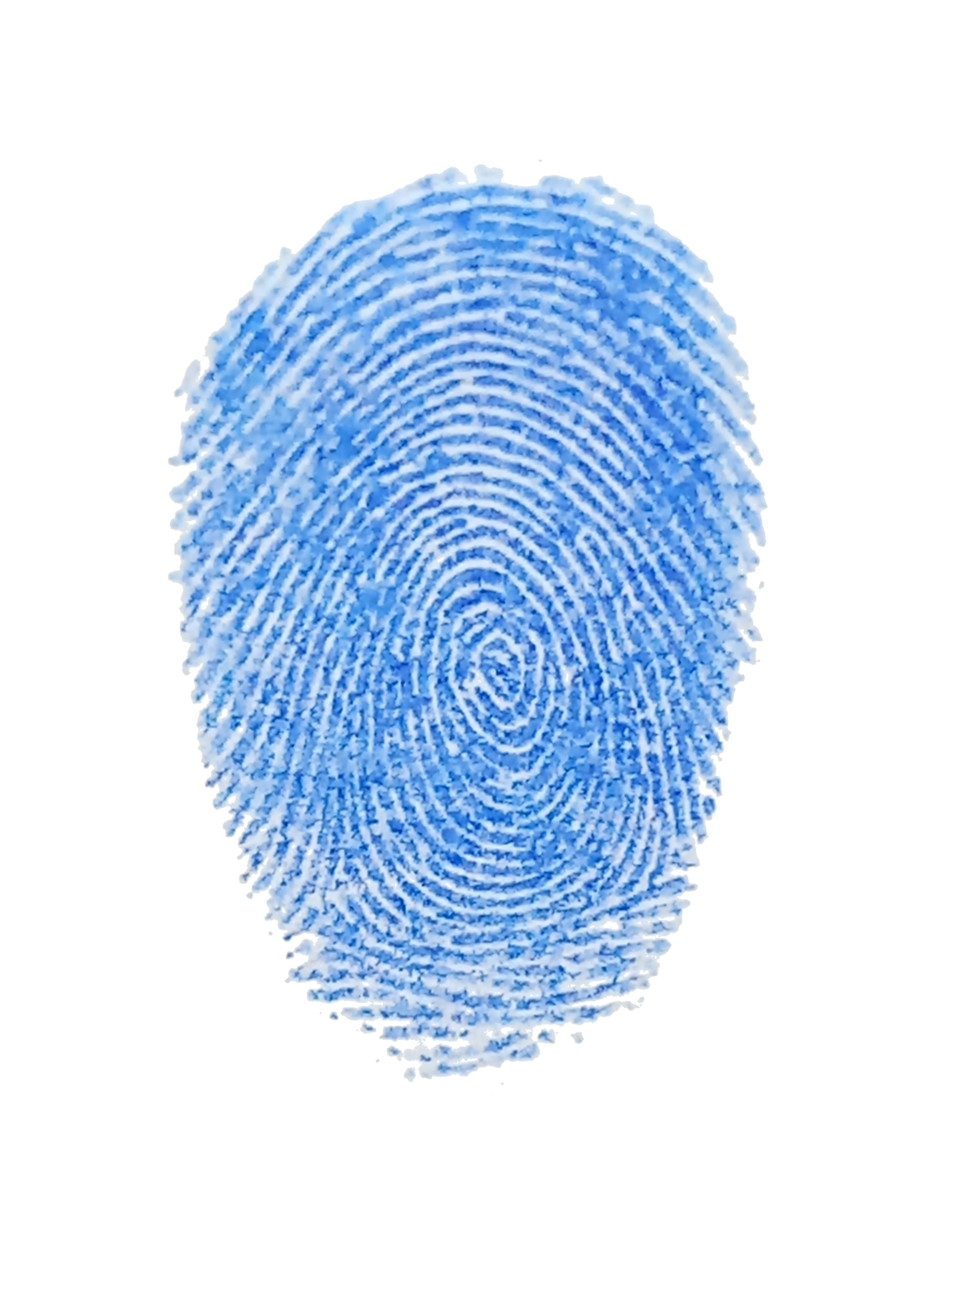 finger%20print%20blue%20and%20white%20background._edited.png